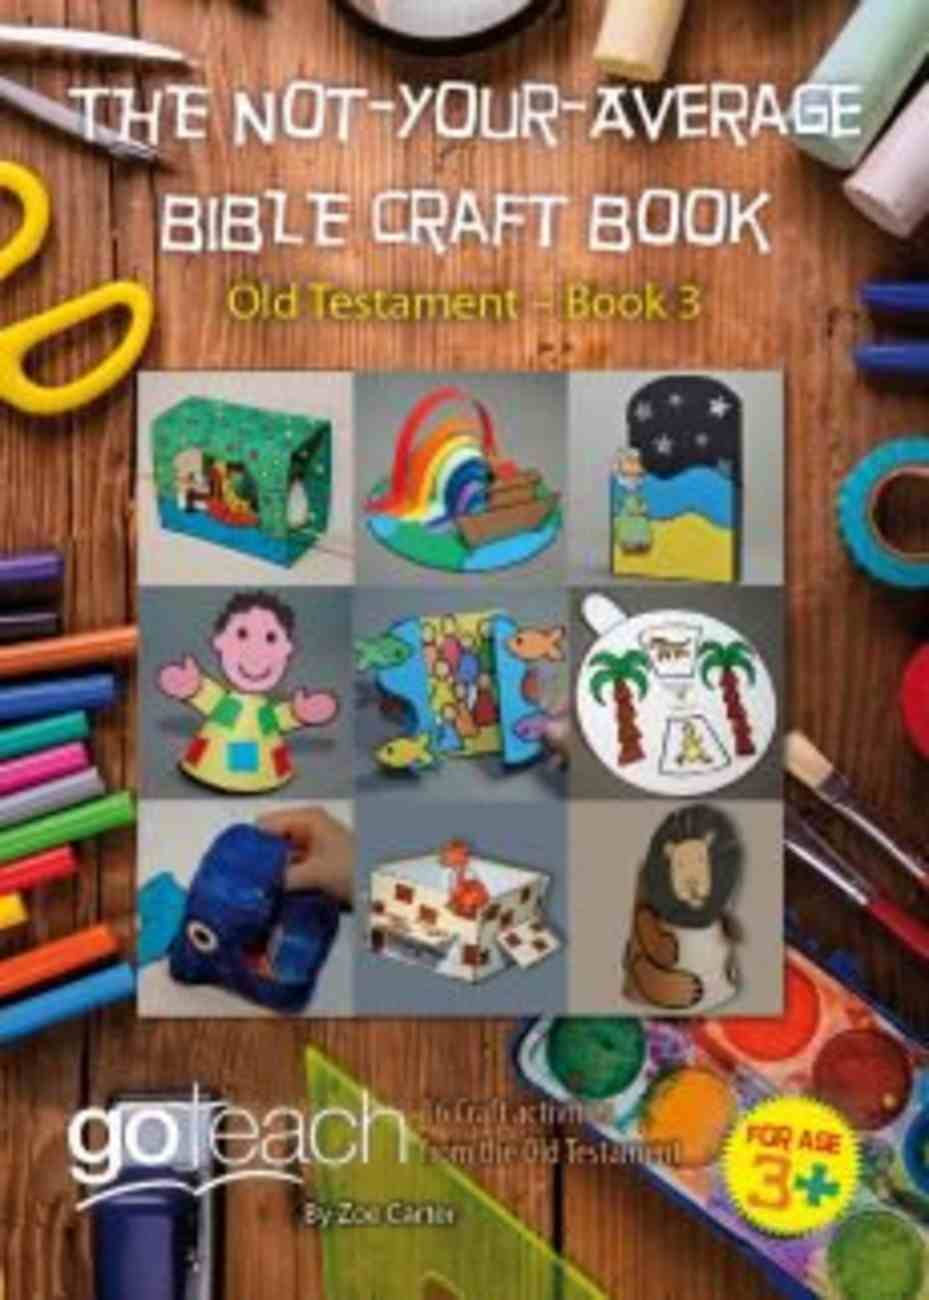 The Not-Your-Average Bible Craft Book (Book 3) Spiral